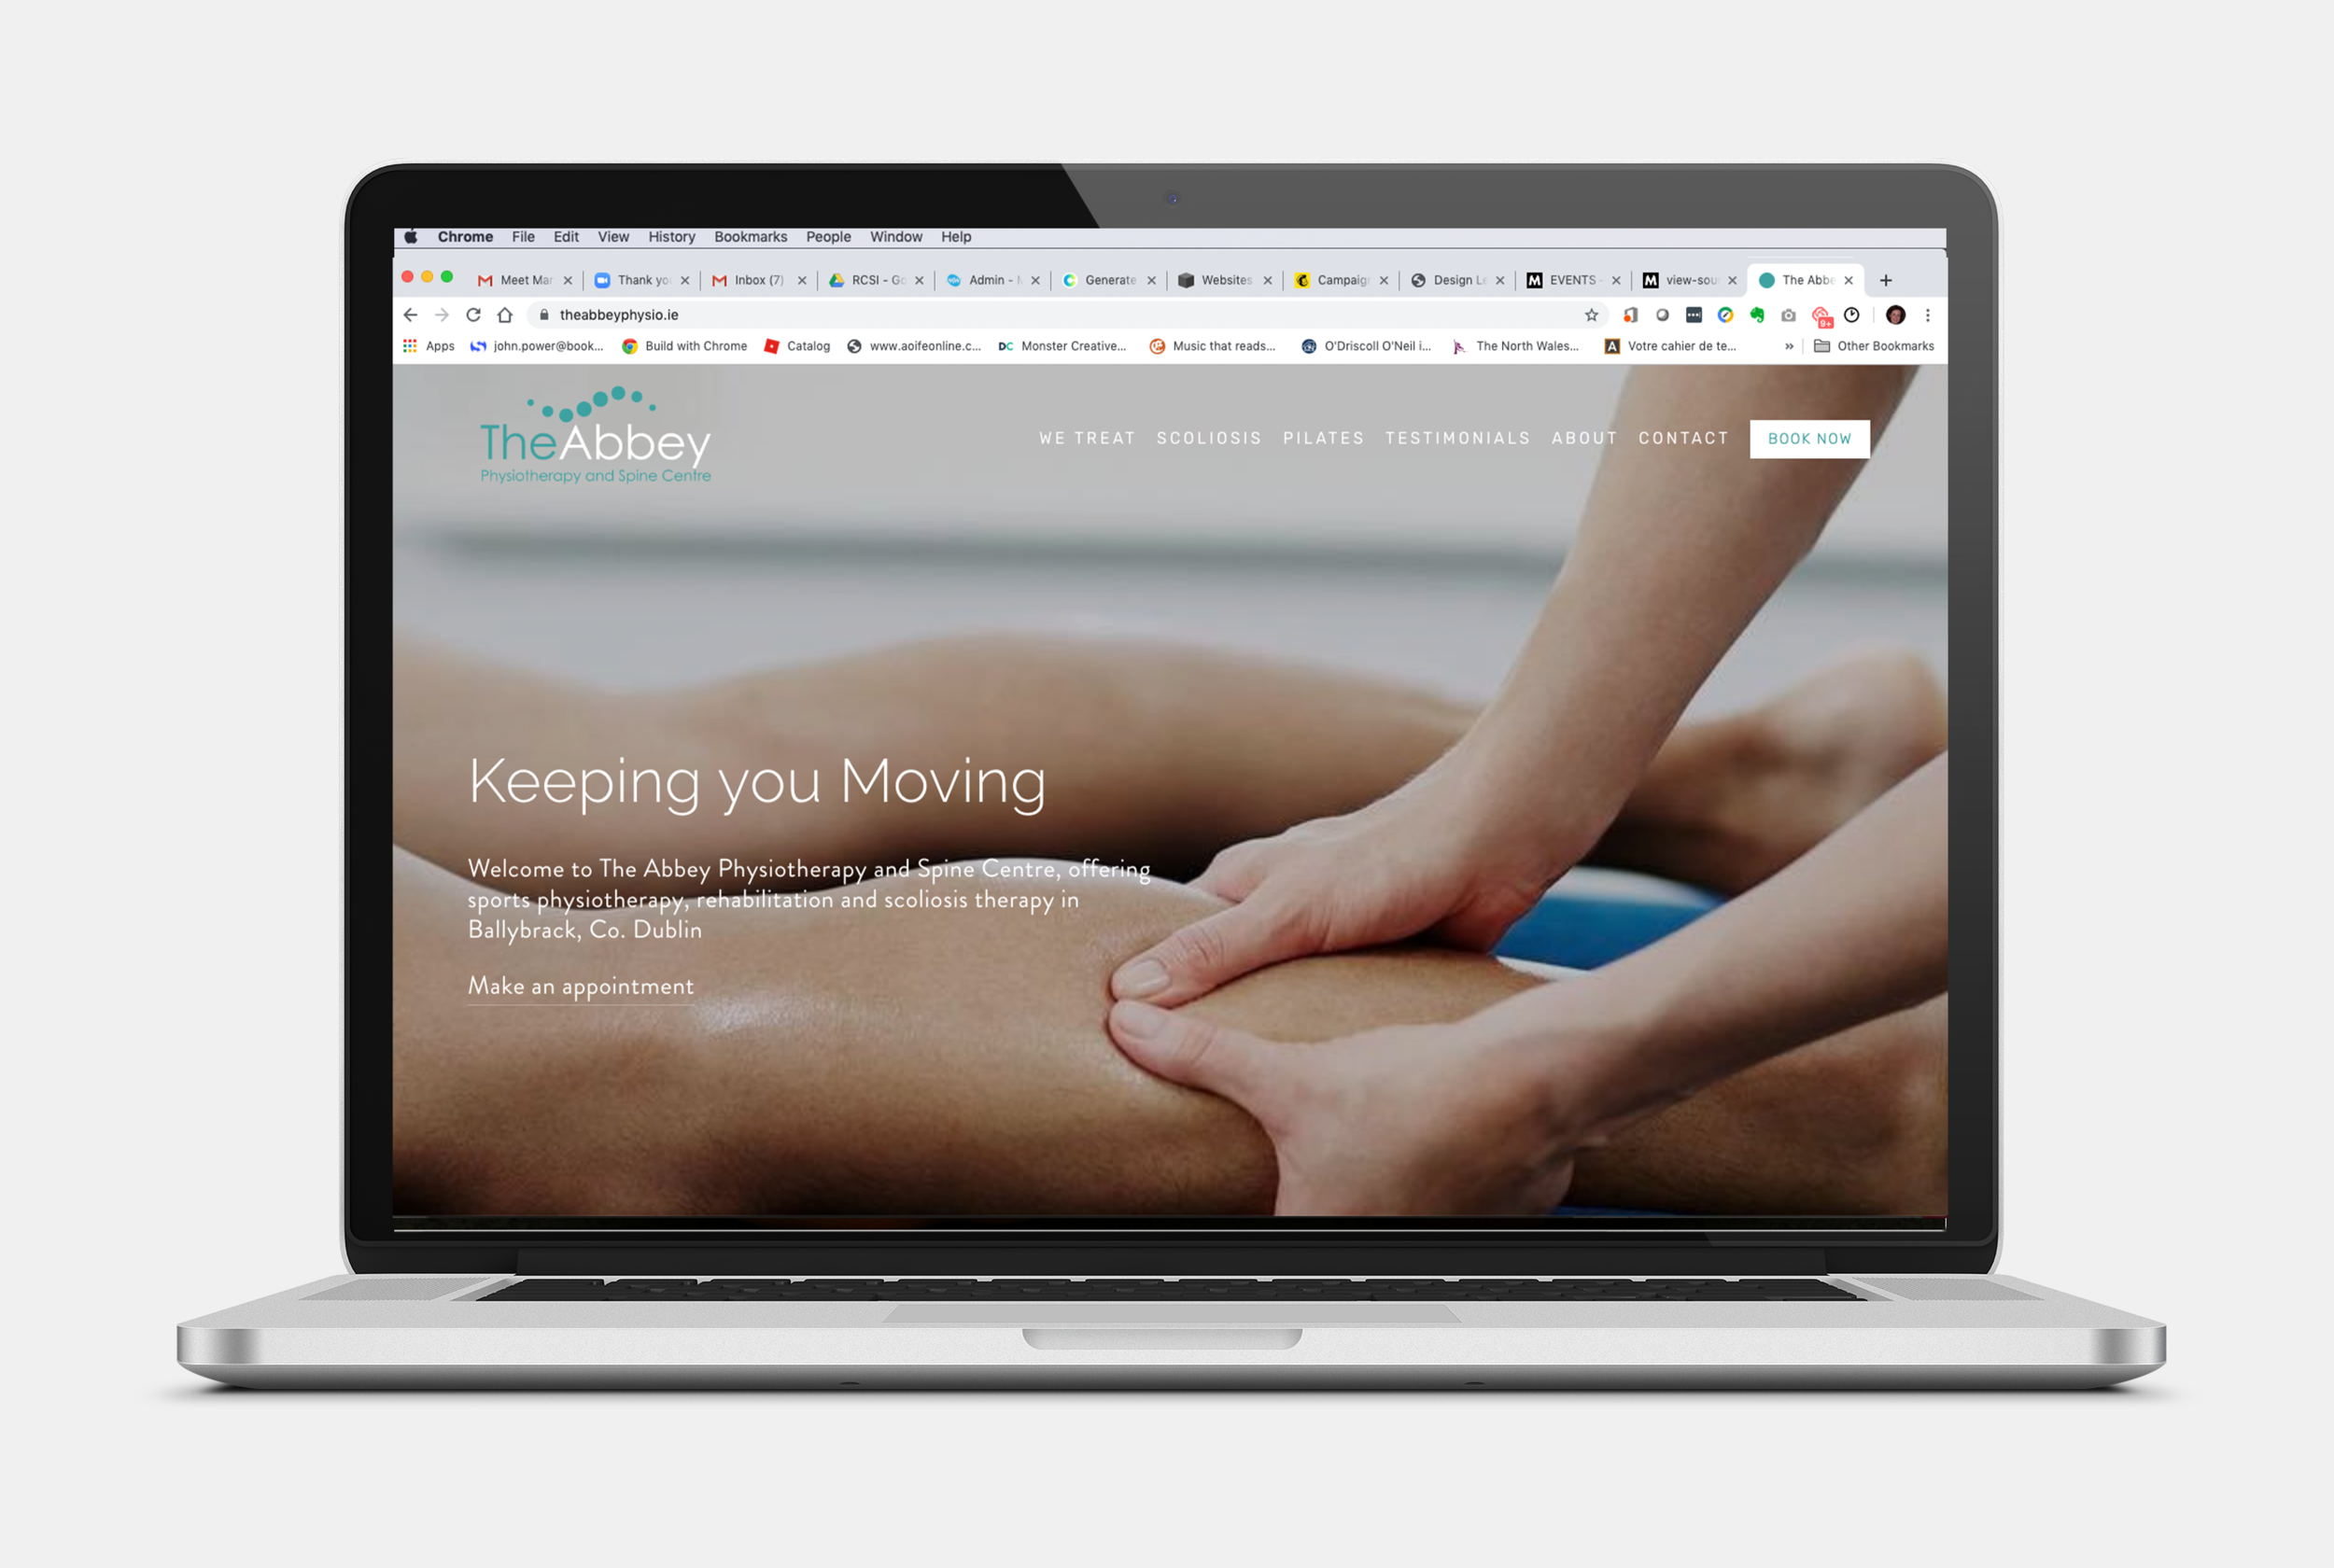 They Abbey Physiotherapy and Spine Clinic specialises in scoliosis detection, one to one Pilates sessions and general sports and injury physiotherapy. Founded by Chartered Physiotherapist Abigail Doyle, Abigail had already invested in some good branding and photography before she asked me to build her website. We integrated the Cliniko appointment scheduling app, so her site visitors can make an appointment straight from the website. Handy!